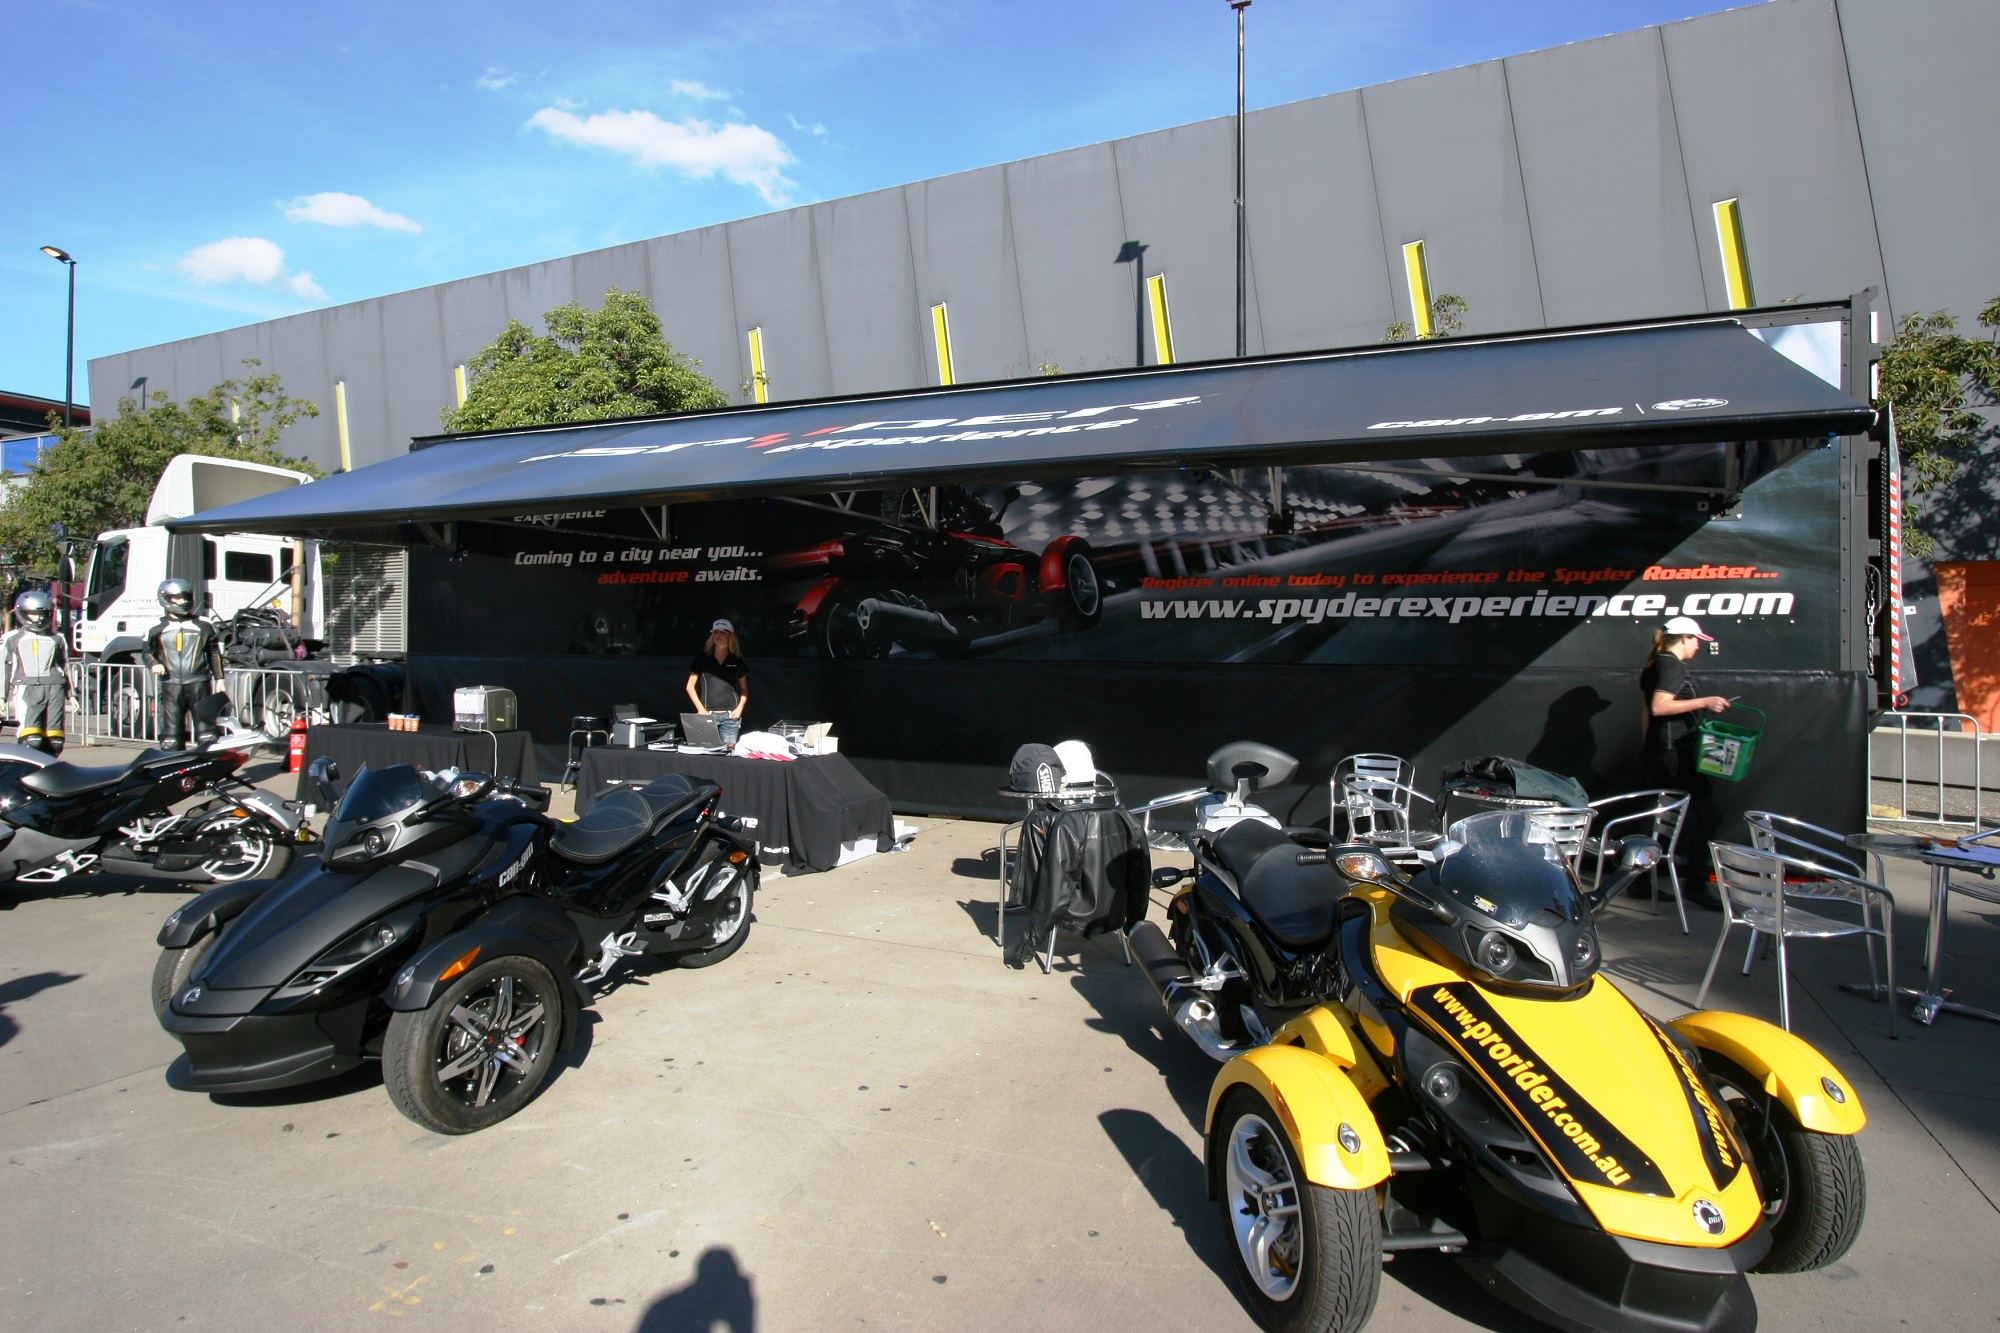 Truck advertising. Vehicle-based events. Custom build. Fleet graphics. Truckside advertising. Vehicle Wraps. Trailer wraps. The Spyder Experience. Can-am. Prorider. Black pantech. Experiential marketing.